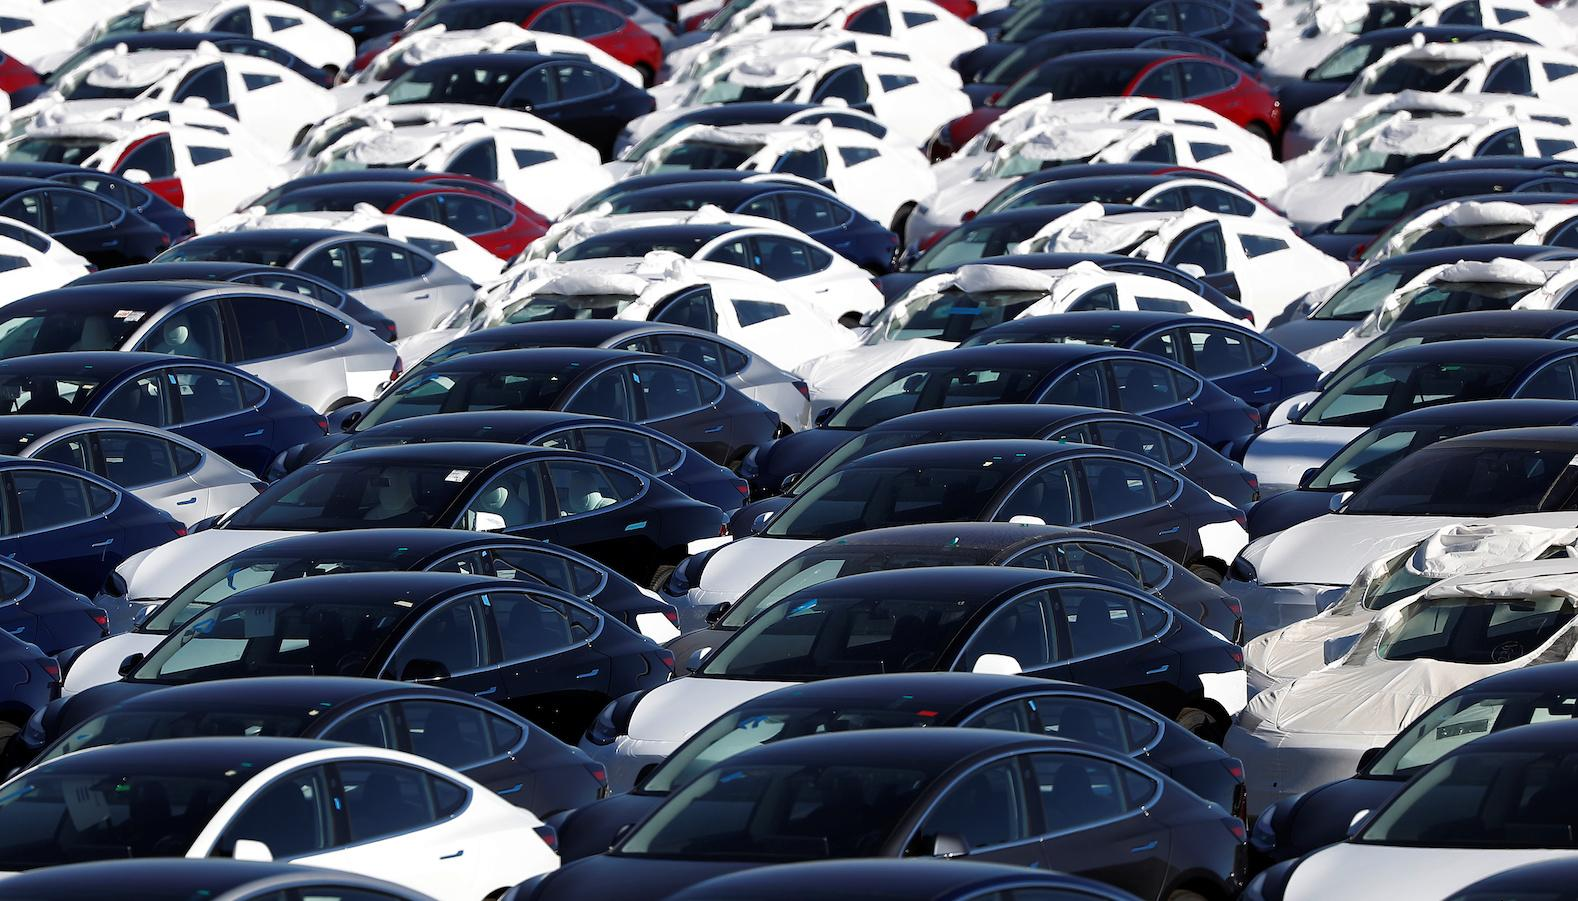 A parking lot of predominantly new Tesla Model 3 electric vehicles is seen in Richmond, California, U.S. June 22, 2018. Picture taken June 22, 2018. REUTERS/Stephen Lam - RC188CC3FC70